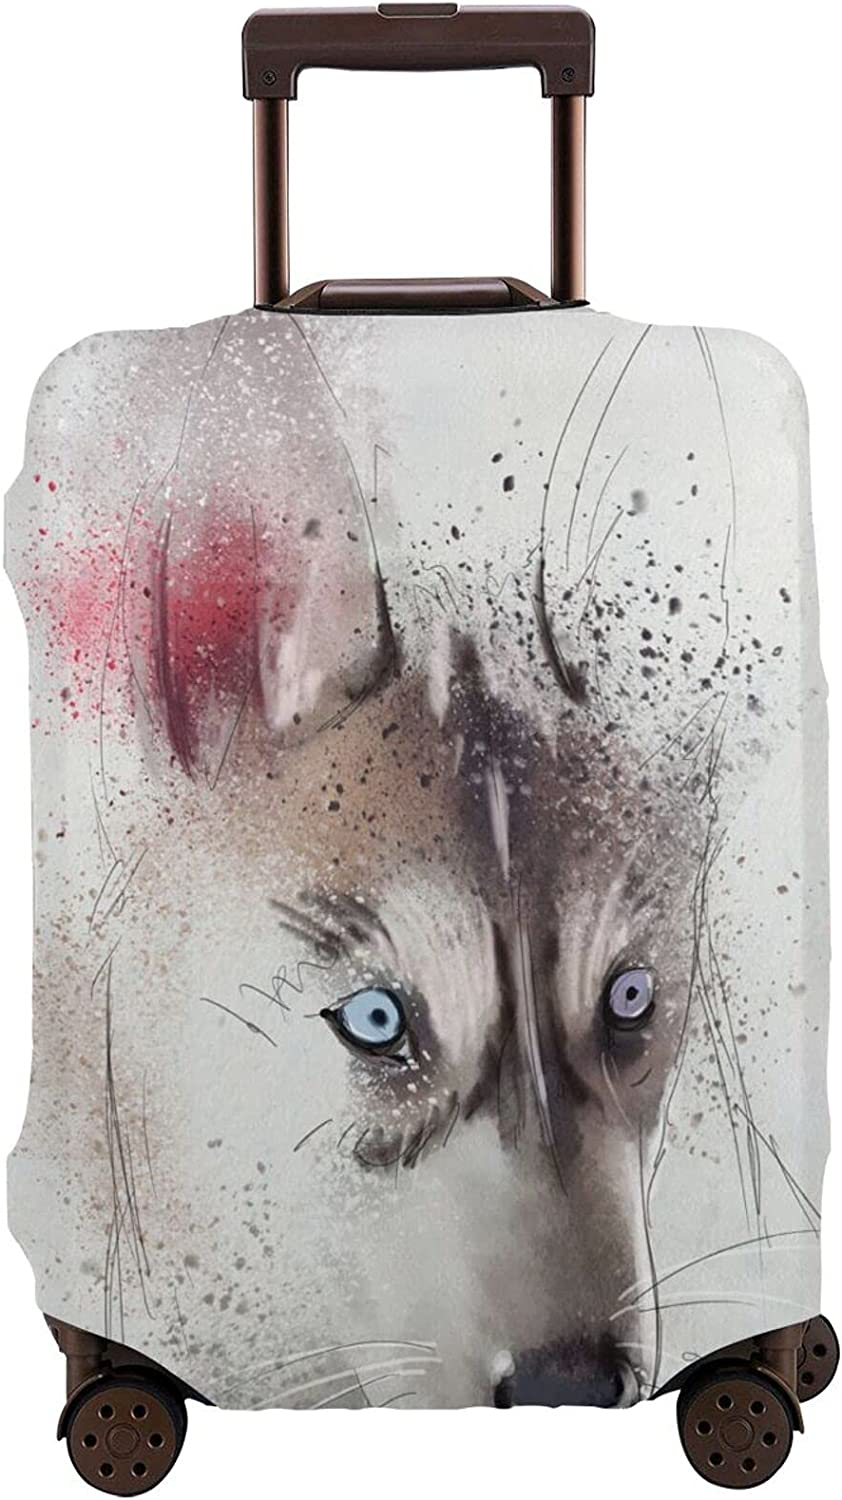 IBILIU Dog Suitcase Cover Protector Free shipping anywhere in Superlatite the nation Black Watercolor Animal